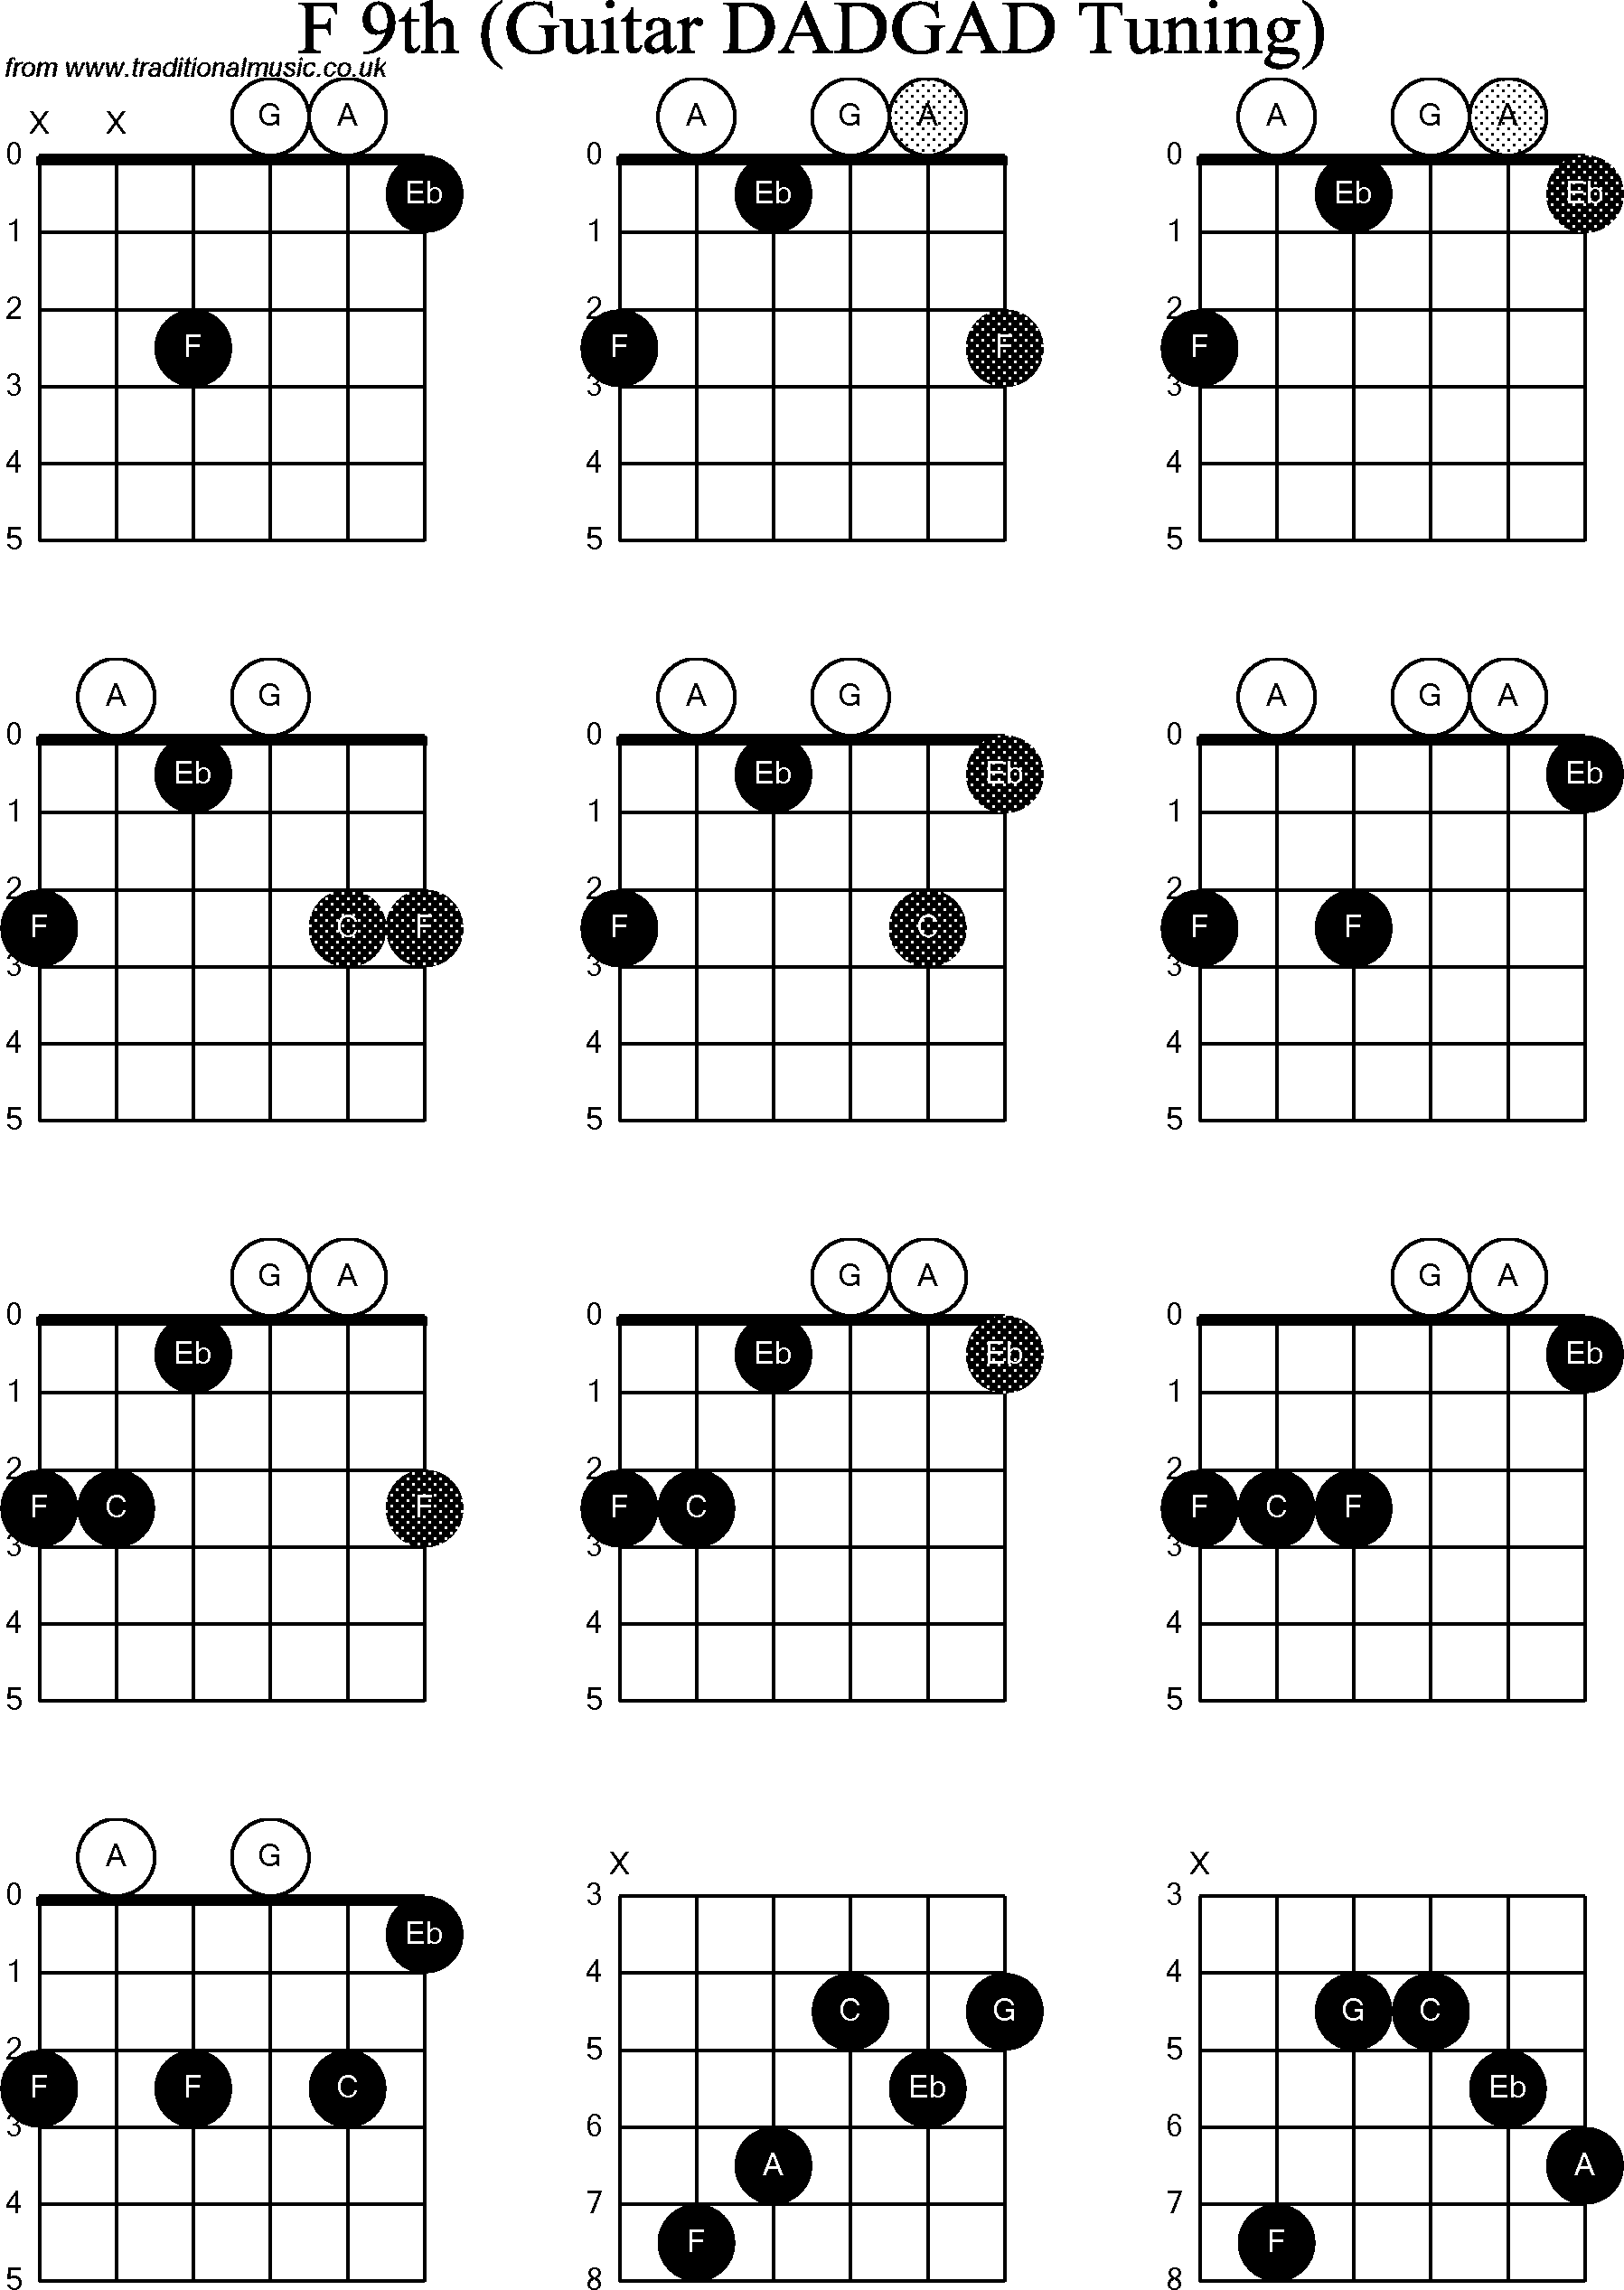 Guitar Chords Chart Bm - Auto Electrical Wiring Diagram on